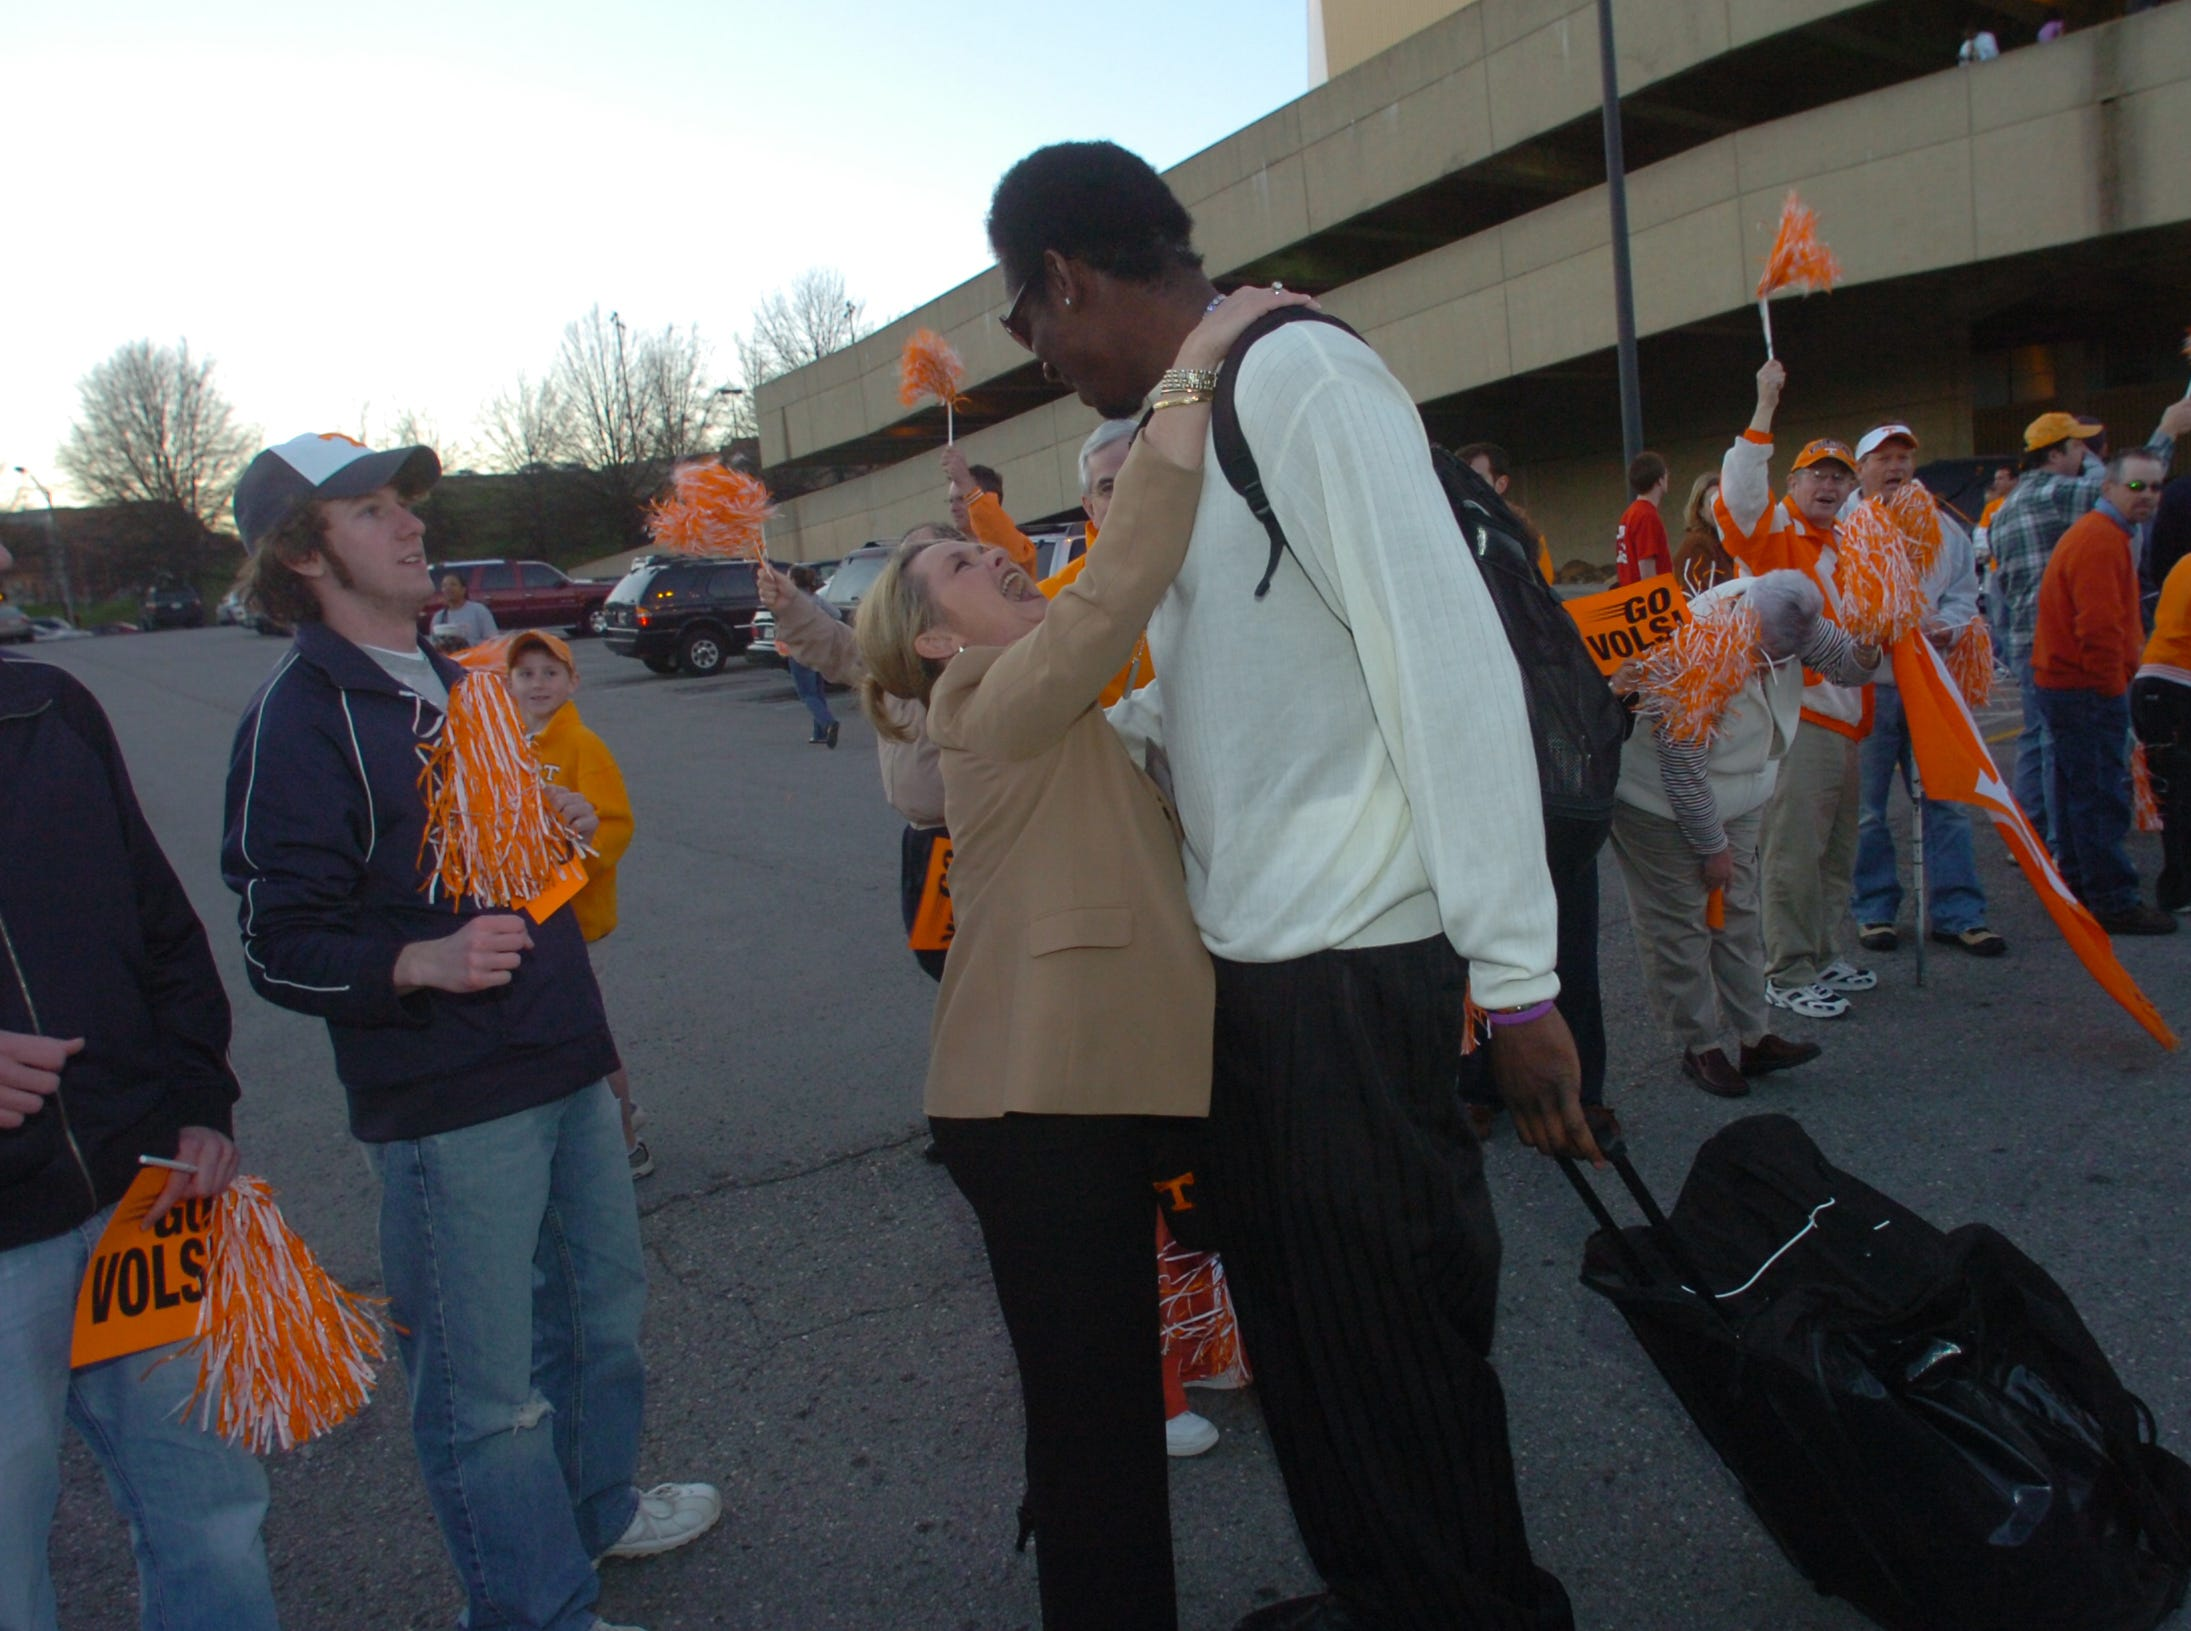 """Tennessee cheerleader's coach Joy Postell gives 6'10"""" center Major Wingate a hug during the men's basketball team's send off to the NCAA tournament Tuesday at Thompson-Boling Arena. The Vols will face Winthrop in a first-round game on Thursday in Greensboro, N.C.   3/14/2006"""